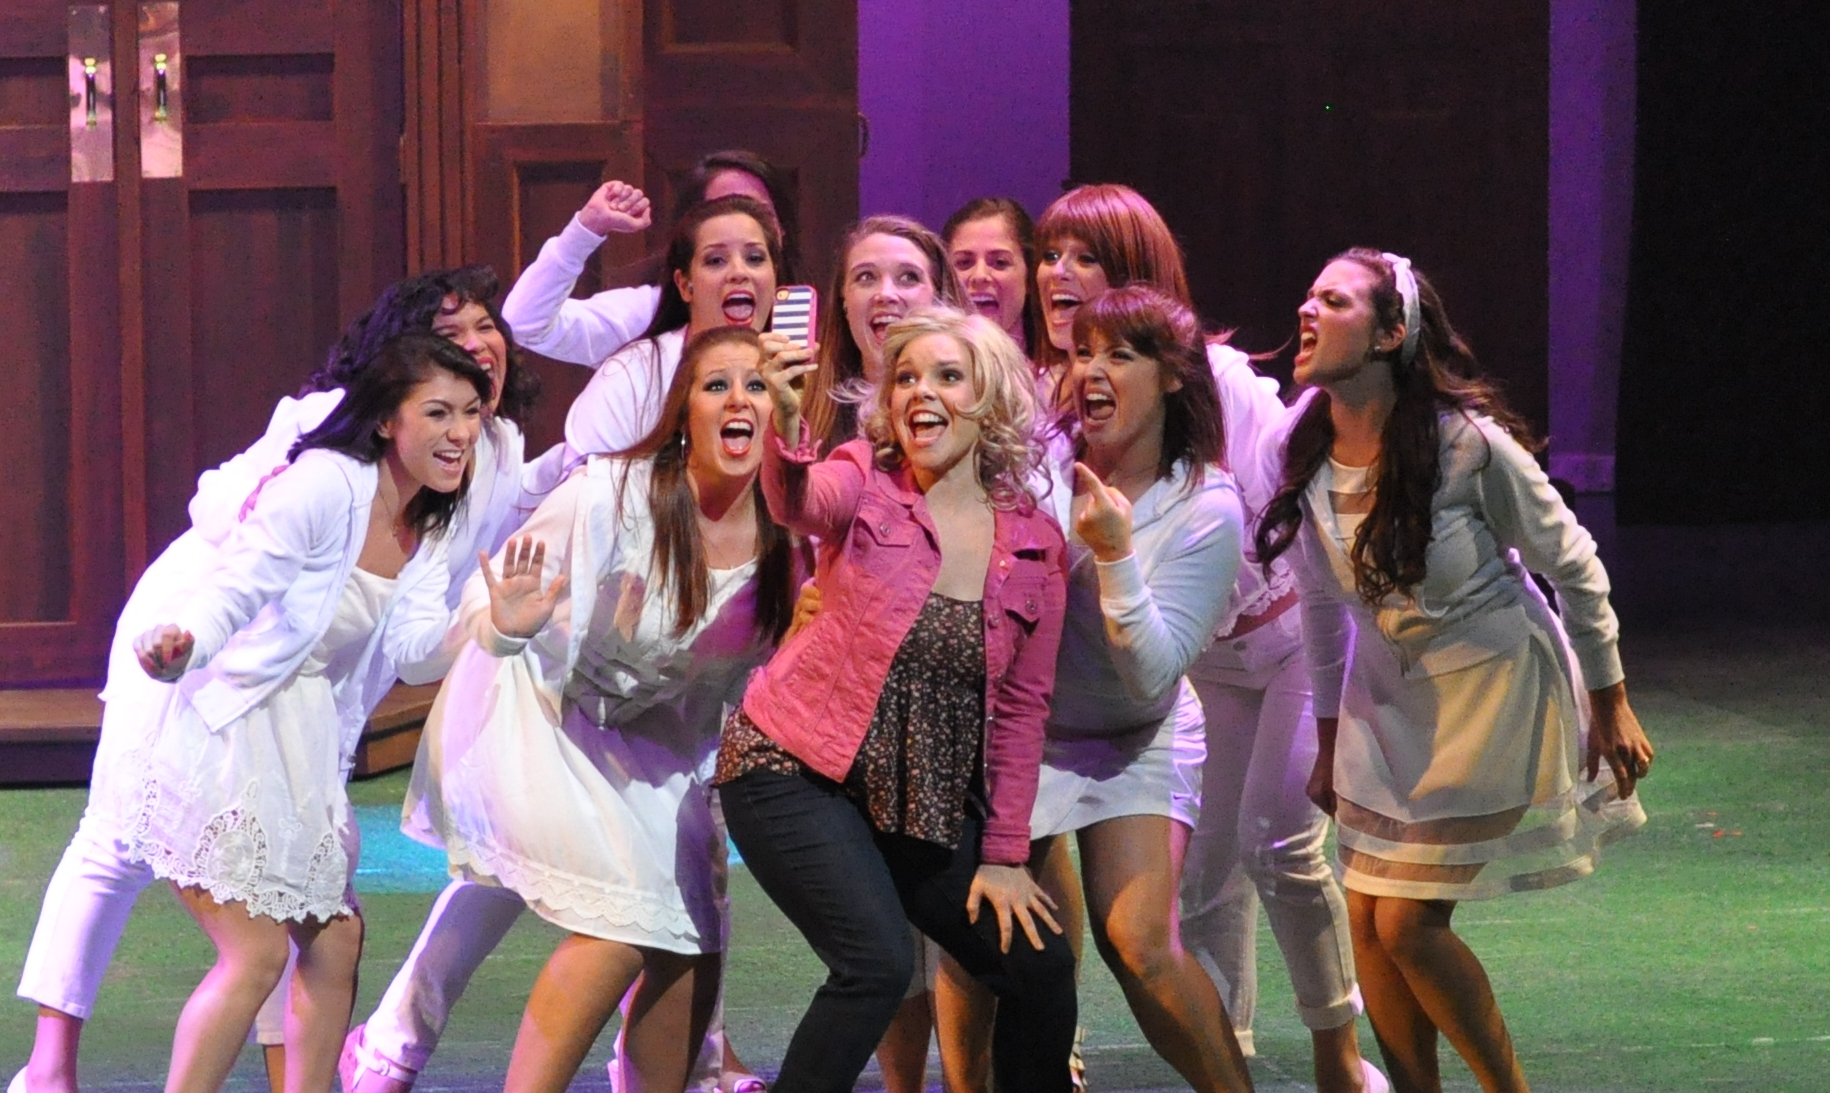 Legally Blonde The Musical (2014)